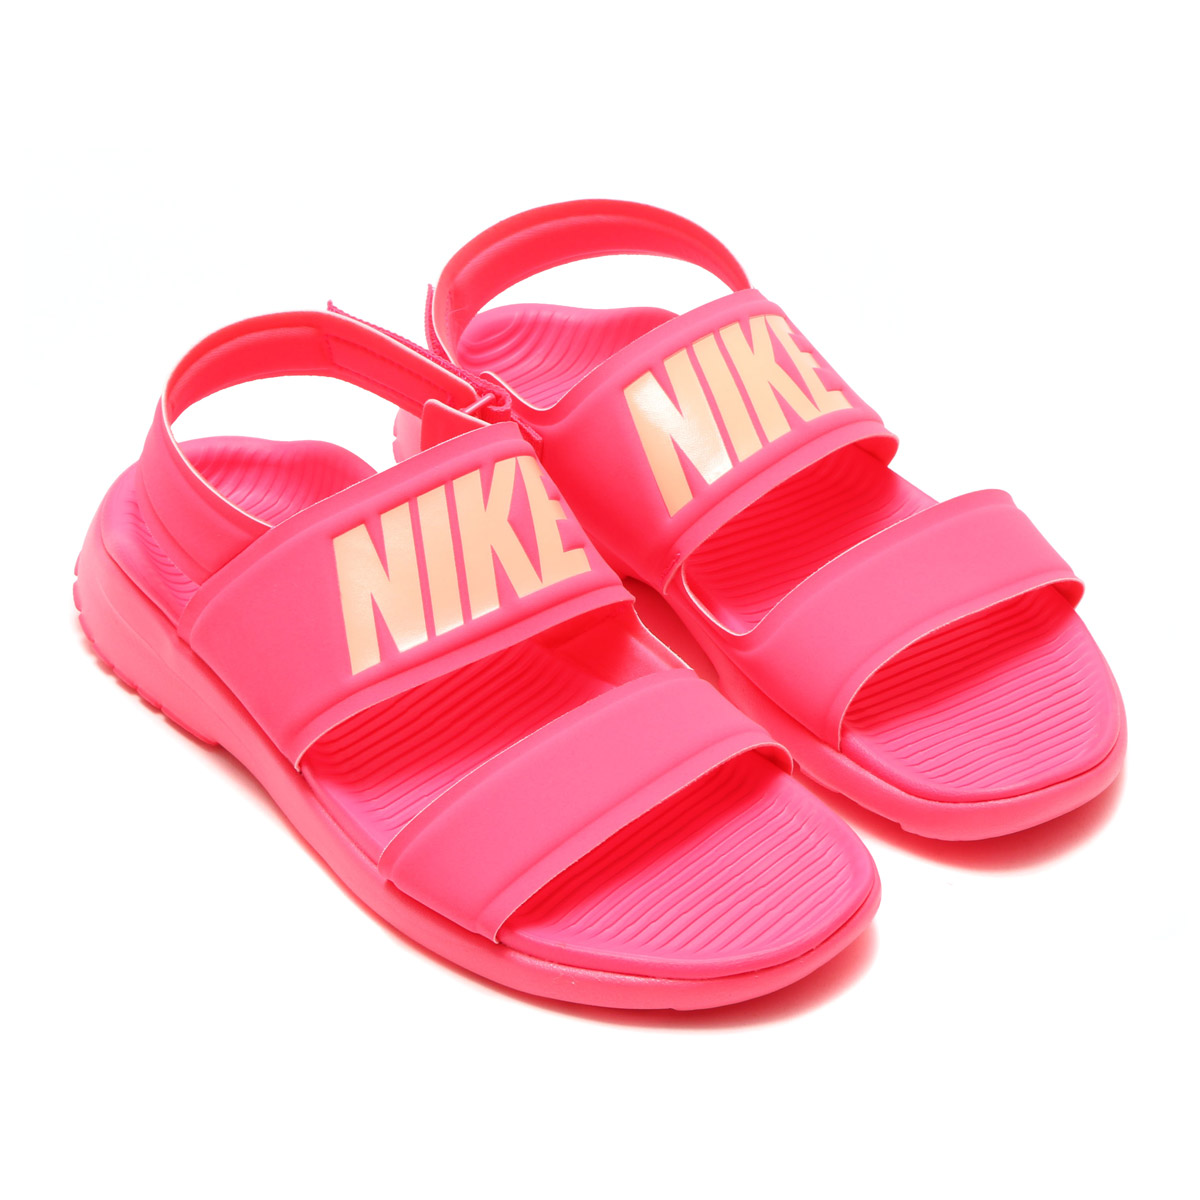 29900b25f33b where can i buy nike tanjun anthracite igloo white womens shoes 99005  6ae4c  order women pink nike tanjung sandals 3a6c2 27044